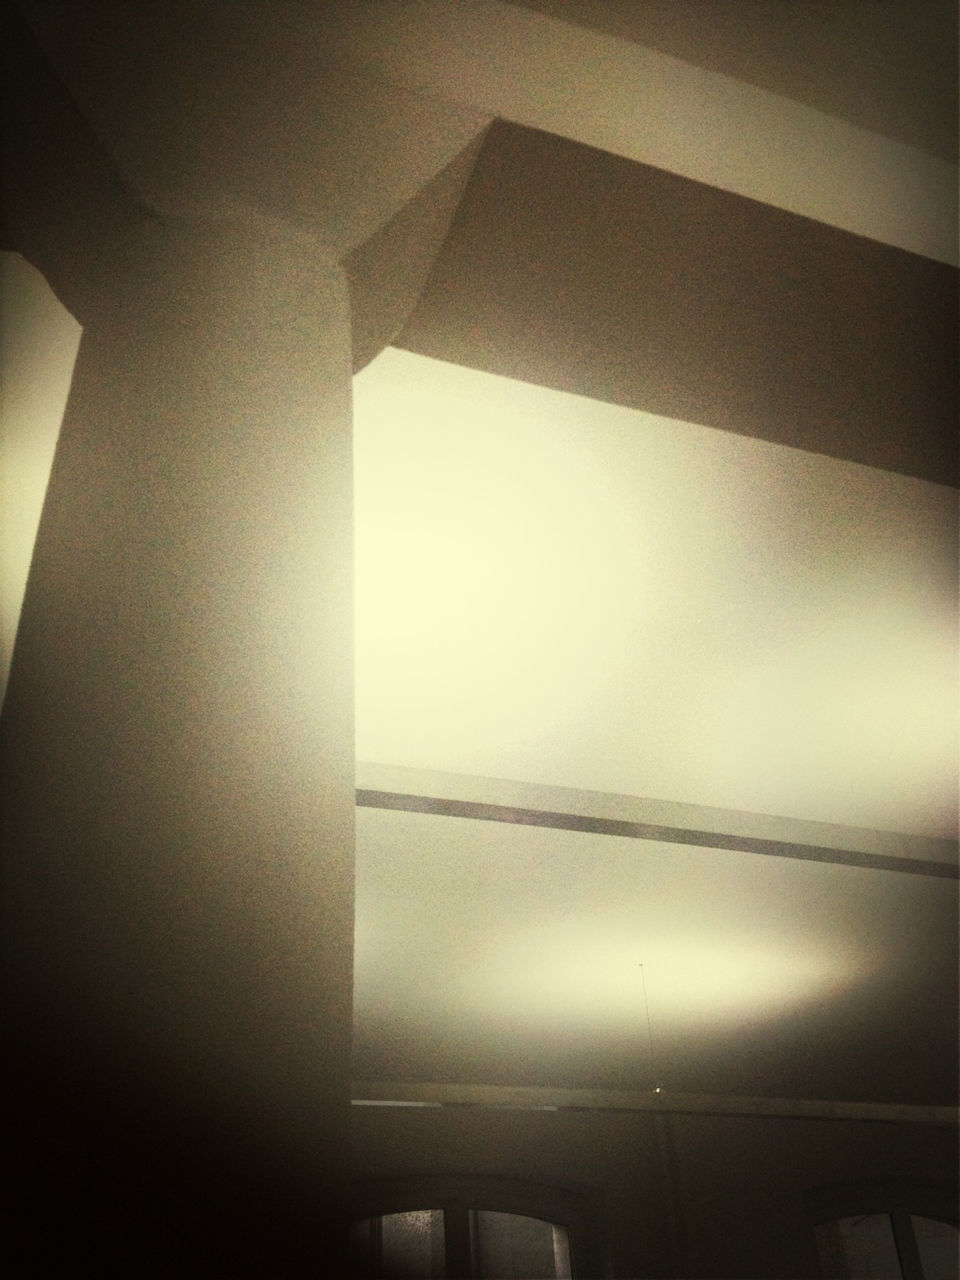 indoors, architecture, built structure, low angle view, no people, illuminated, close-up, day